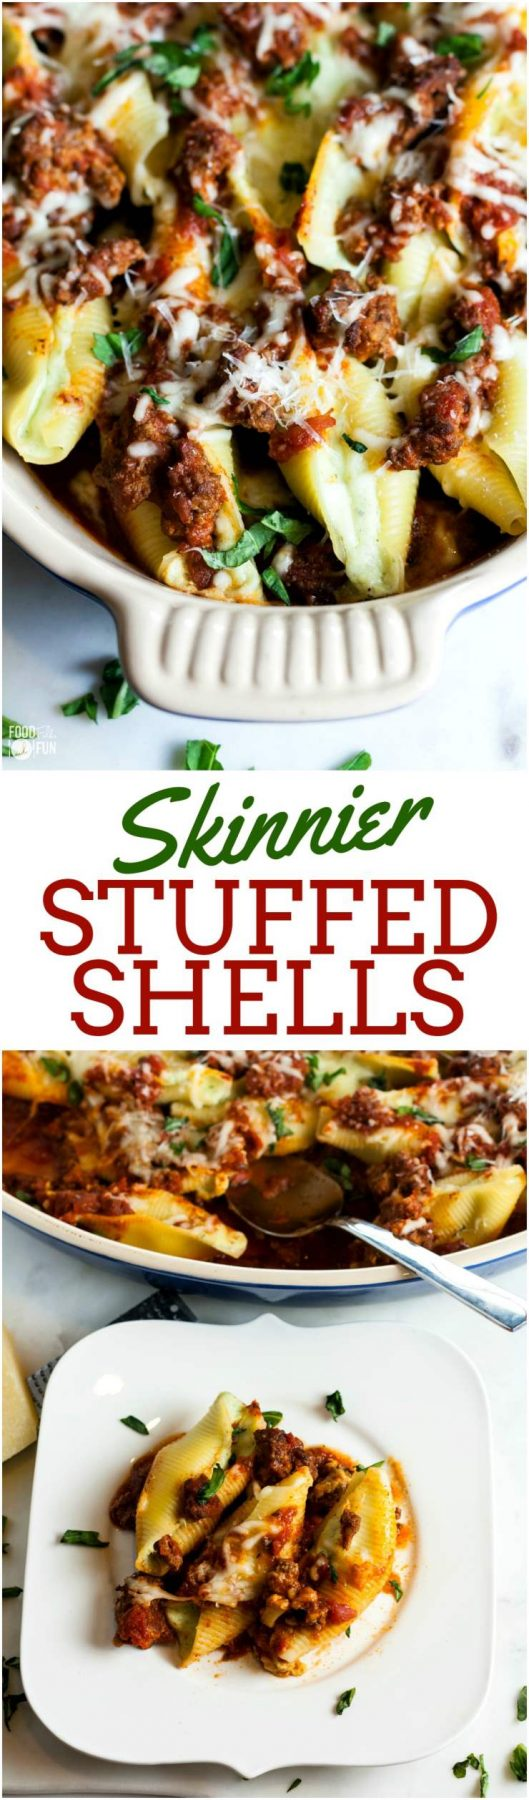 These Skinnier Stuffed Shells are packed with flavor and a velvety-smooth filling. They're made skinnier by using fat free cottage cheese instead of ricotta, and part-skim mozzarella cheese!